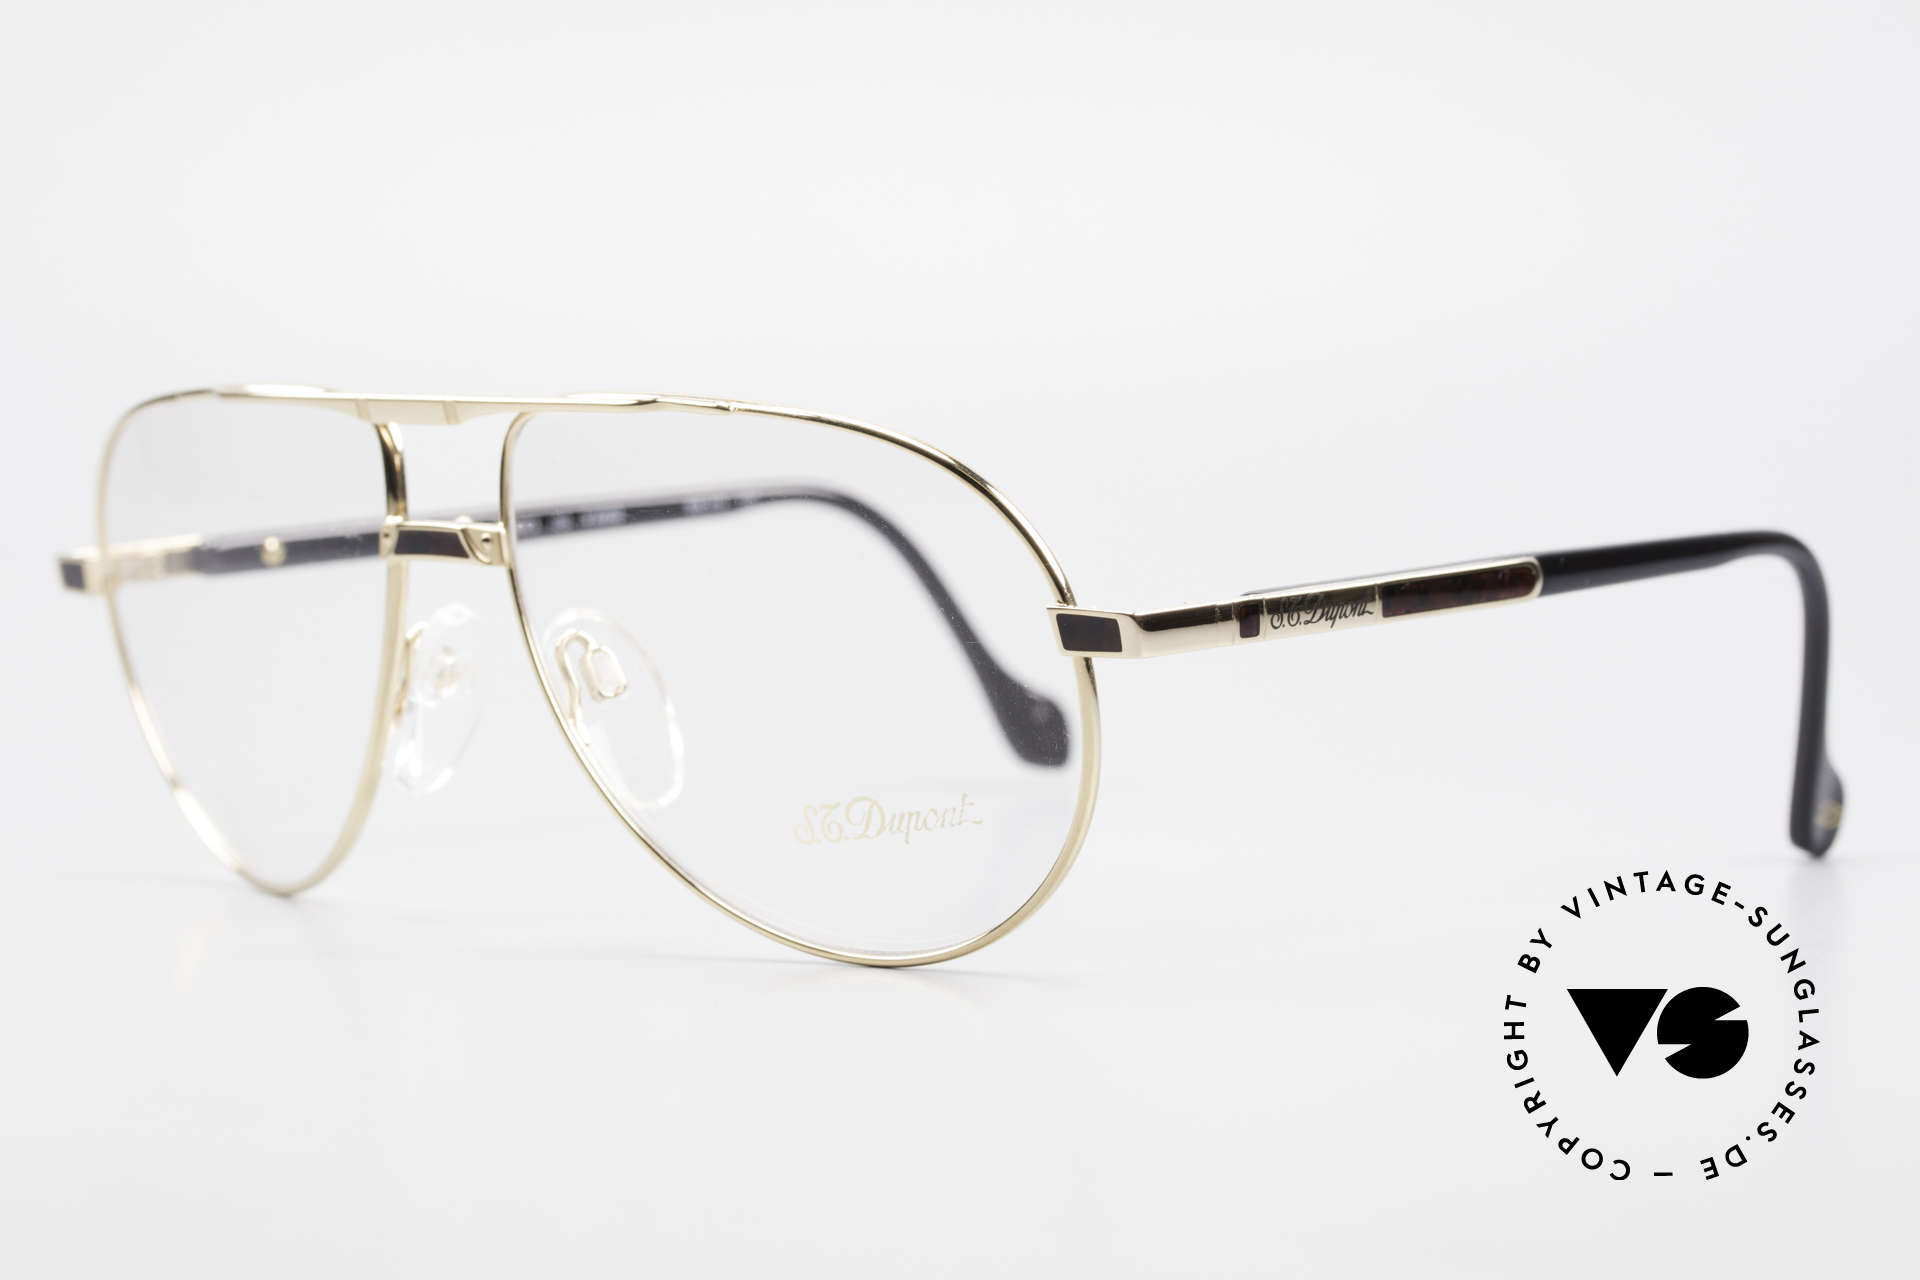 S.T. Dupont D023 Luxury Aviator Frame For Men, very noble & 1st class wearing comfort, U must feel it!, Made for Men